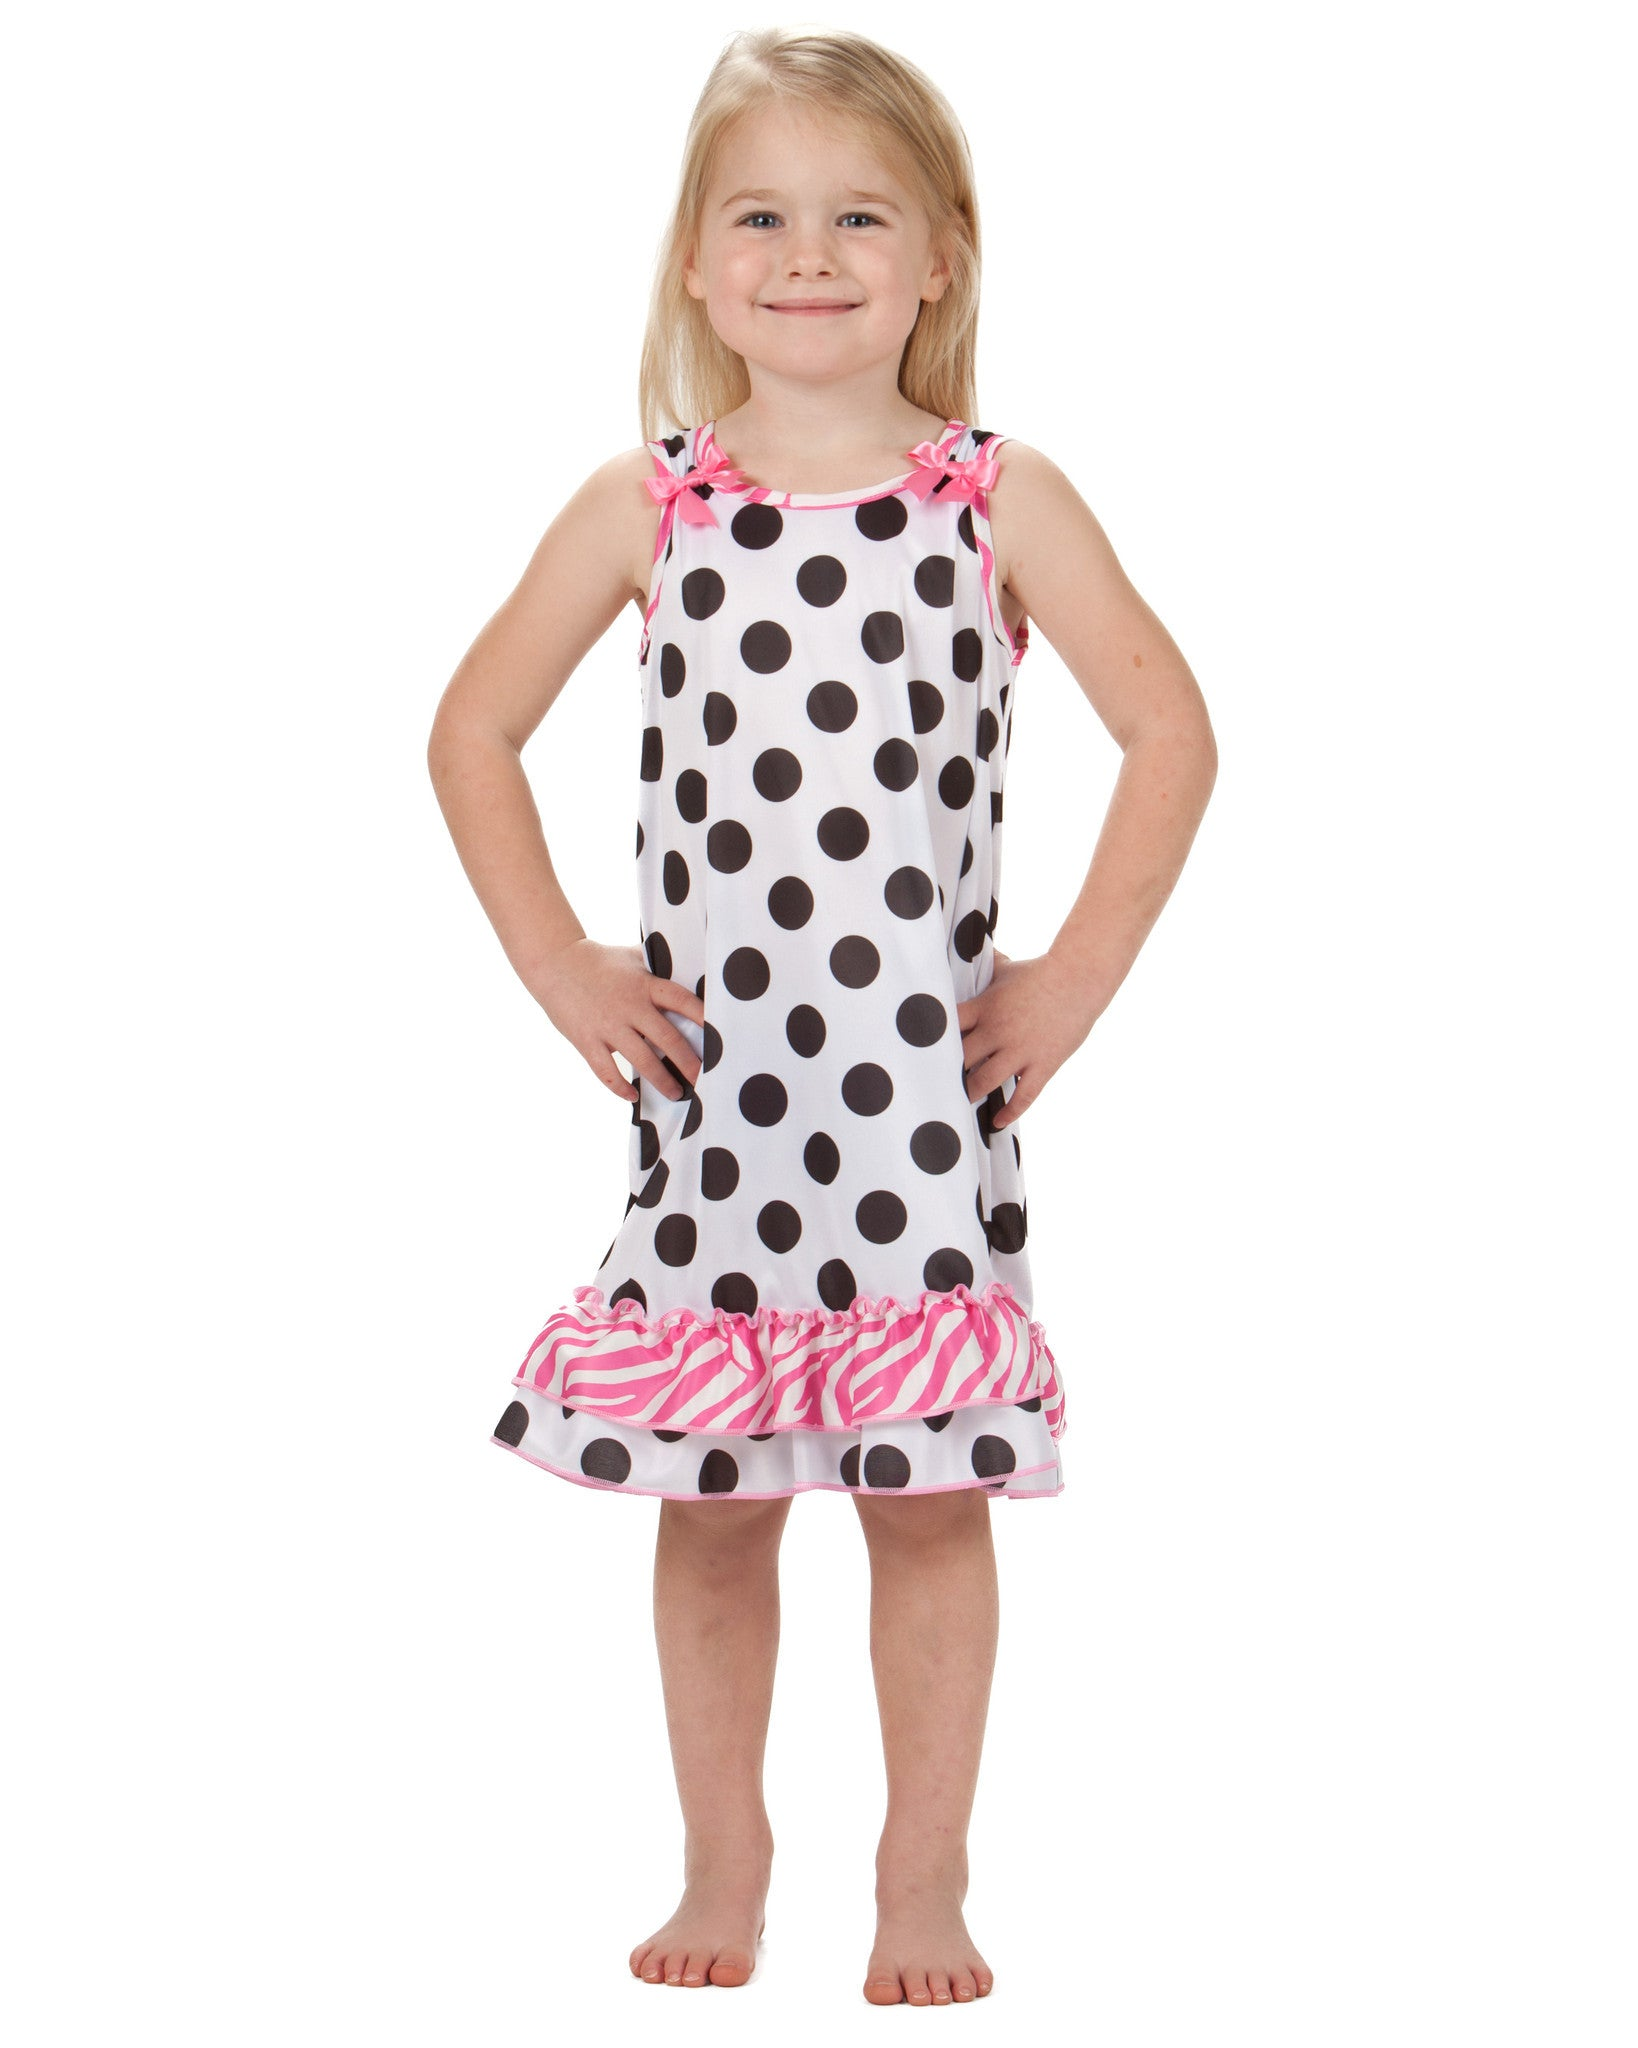 Laura Dare Connect The Dots Bow Top Nightgown (2T - 10)